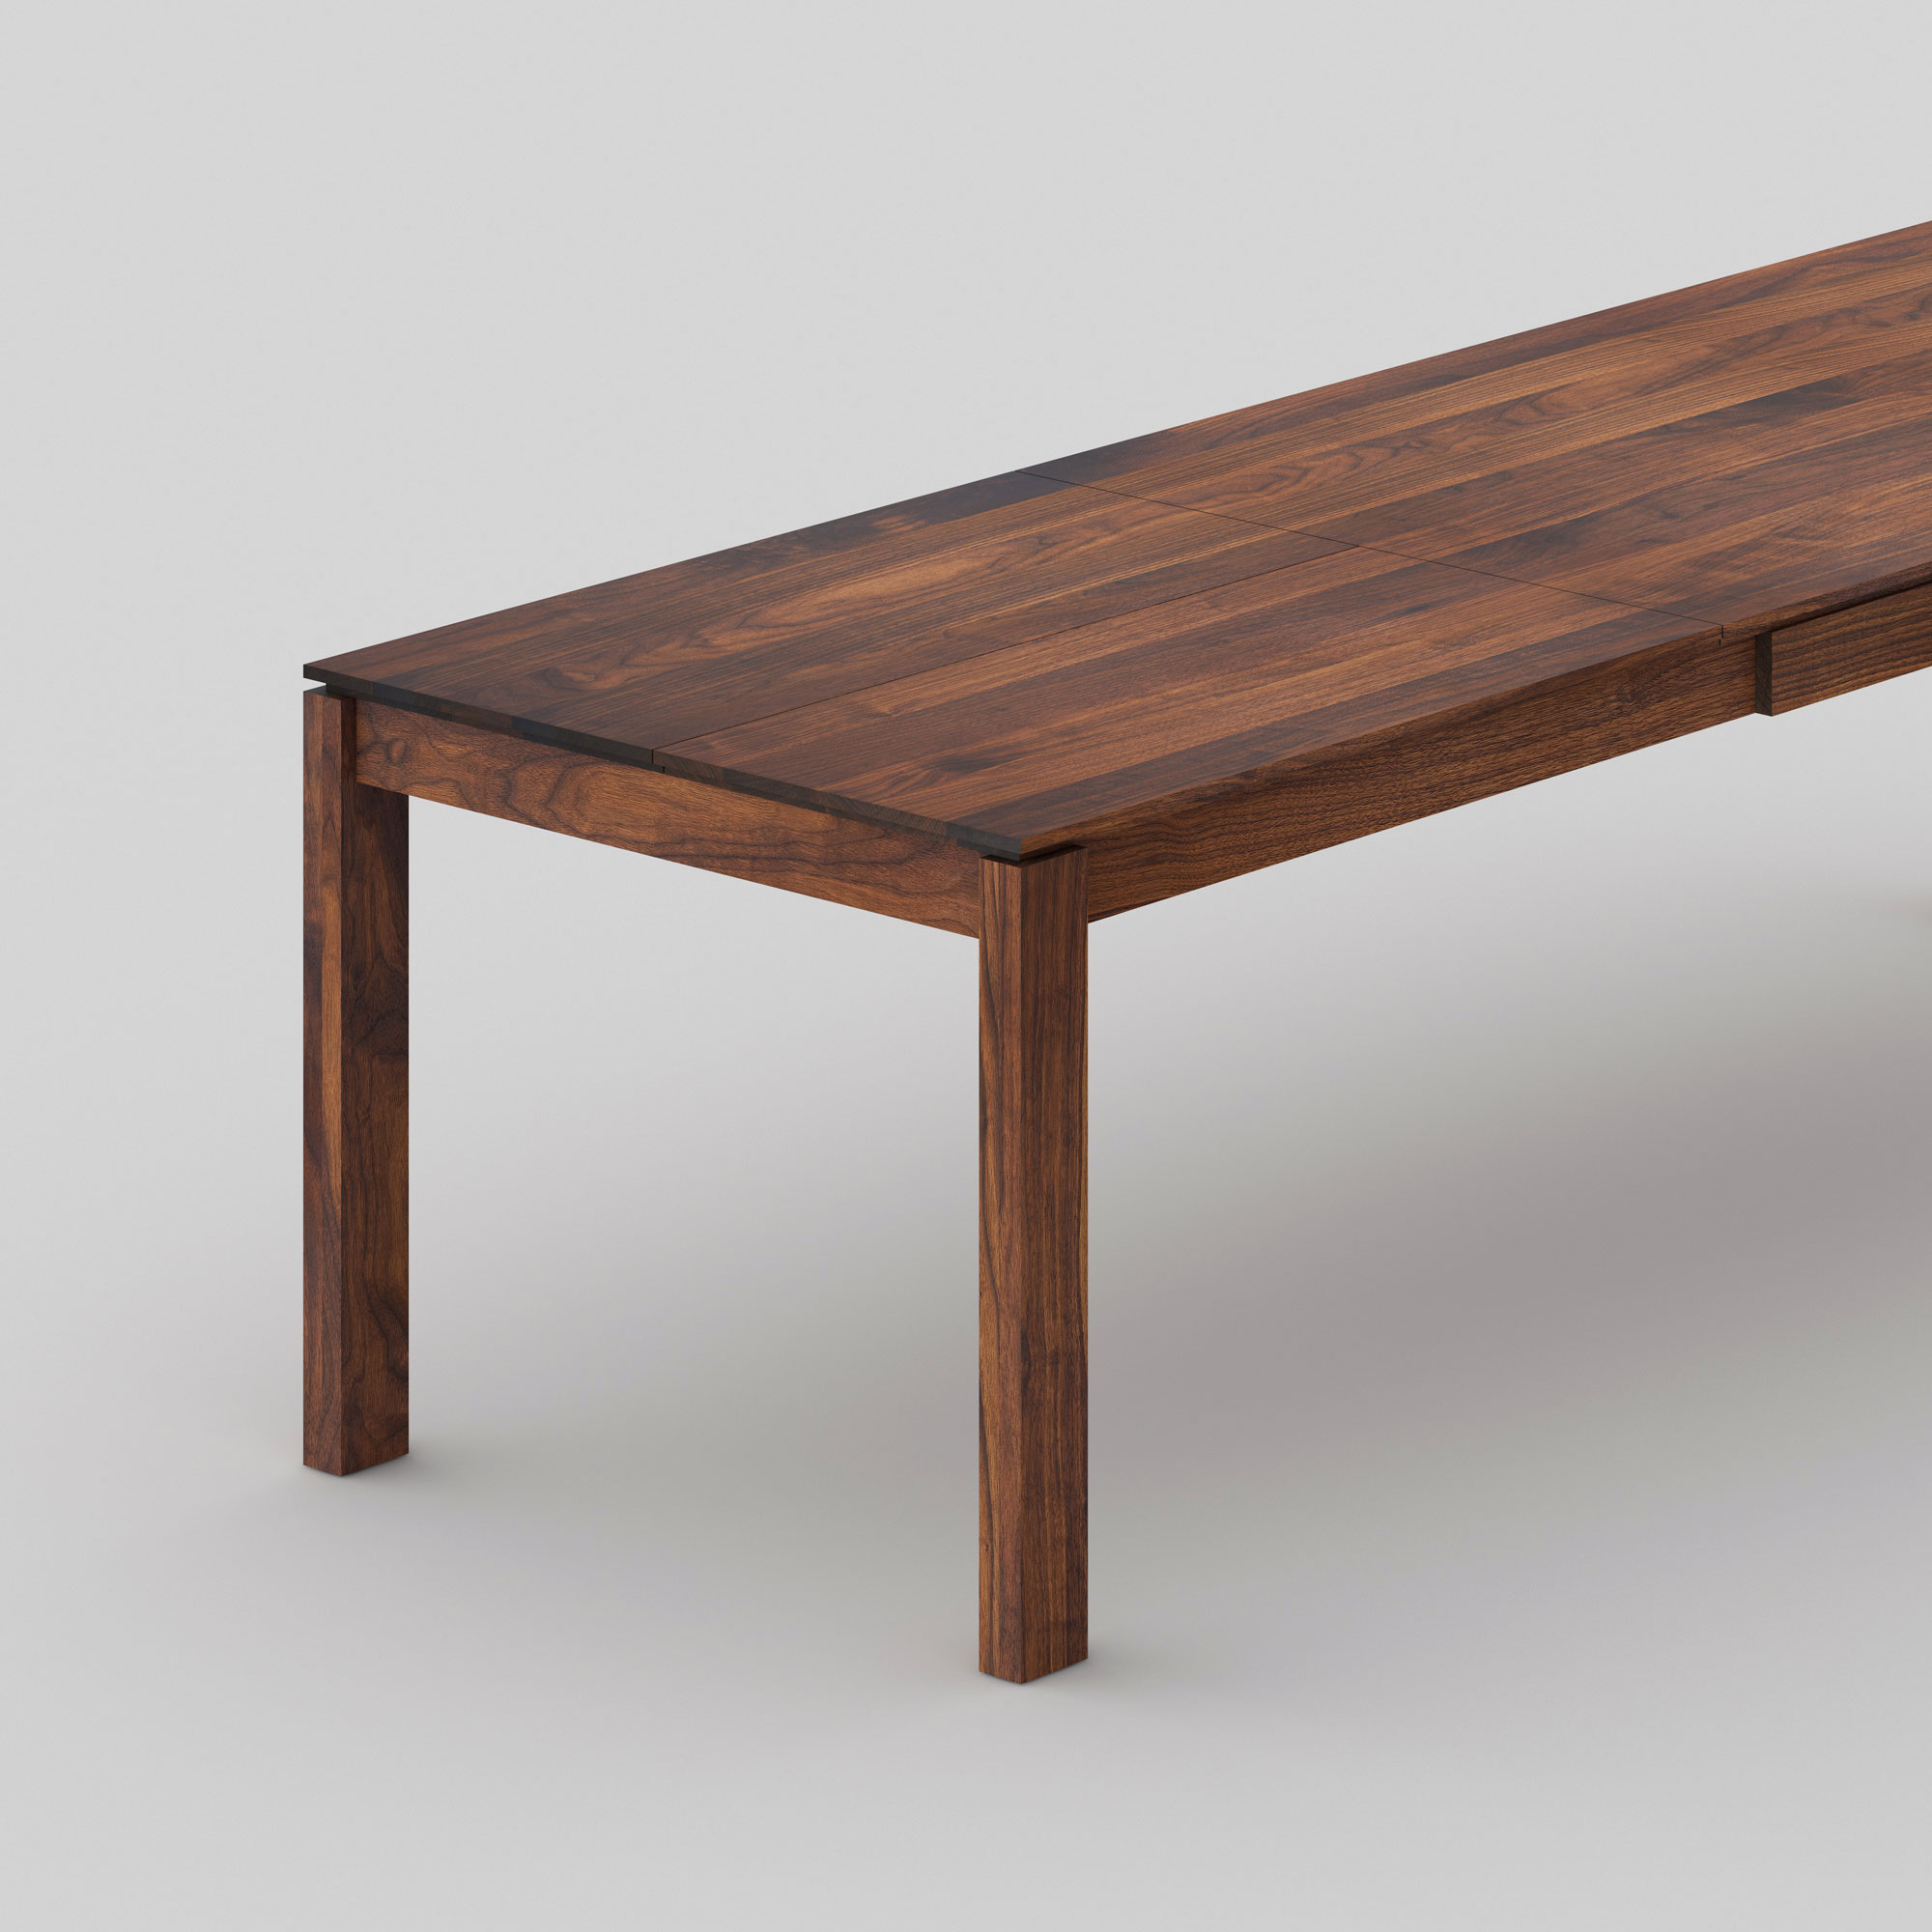 Extending Dining Table CONVERTO BUTTERFLY cam2 custom made in solid wood by vitamin design